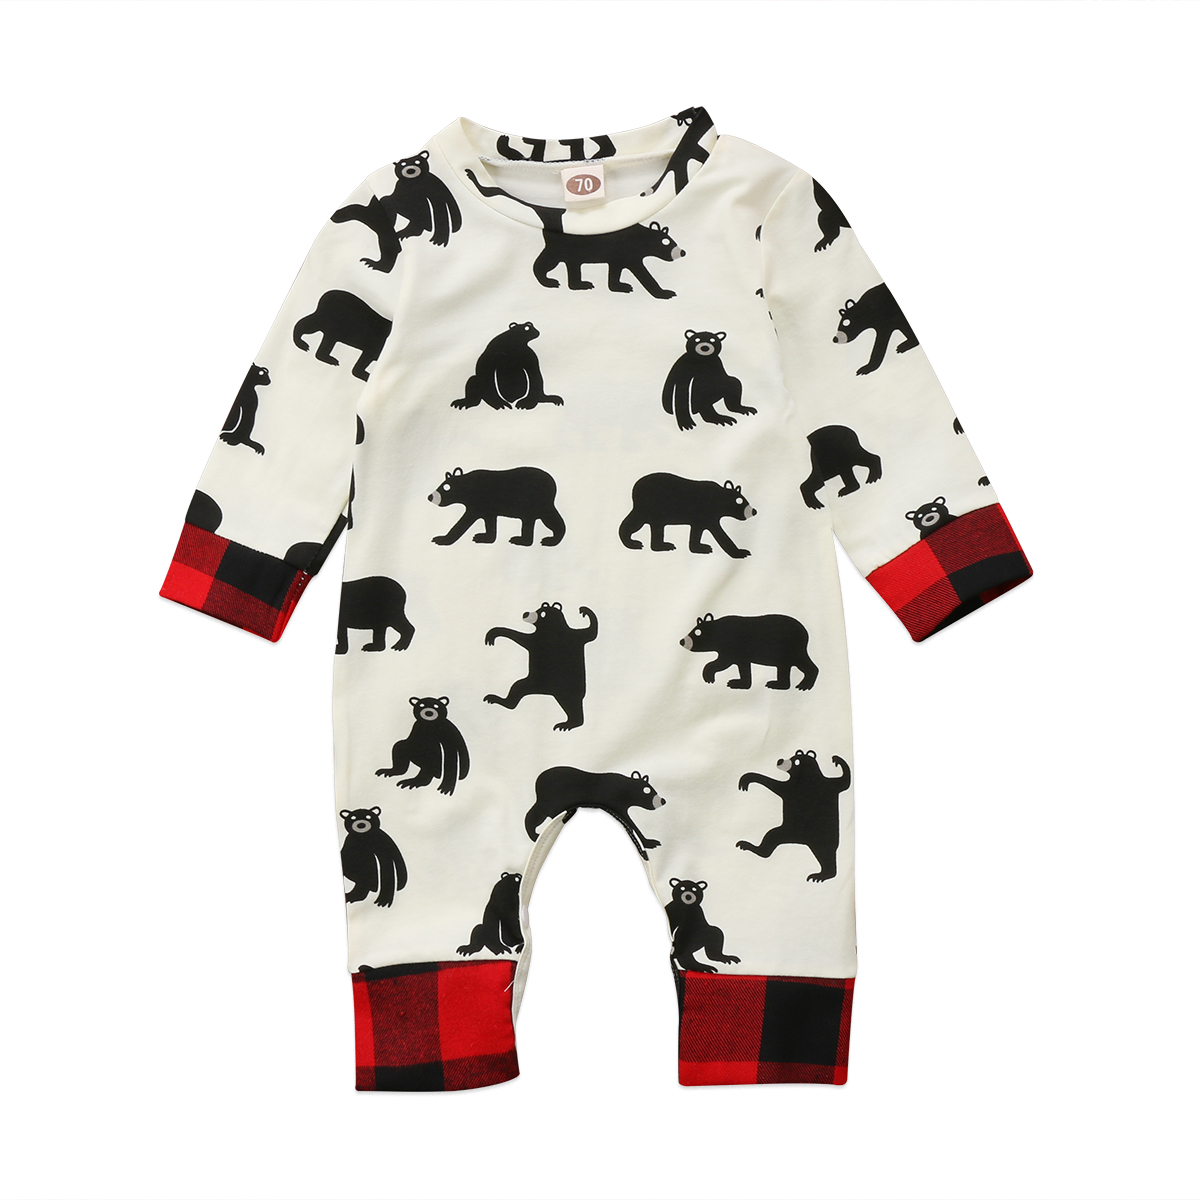 Newborn Baby Boy Girl Clothes Fall Animal Print Cotton Jumpsuit Romper Playsuit Clothing For 0-24M cute newborn floral clothes sleeveless infant baby girl cotton romper jumpsuit playsuit one pieces sunsuit outfit clothing 0 24m